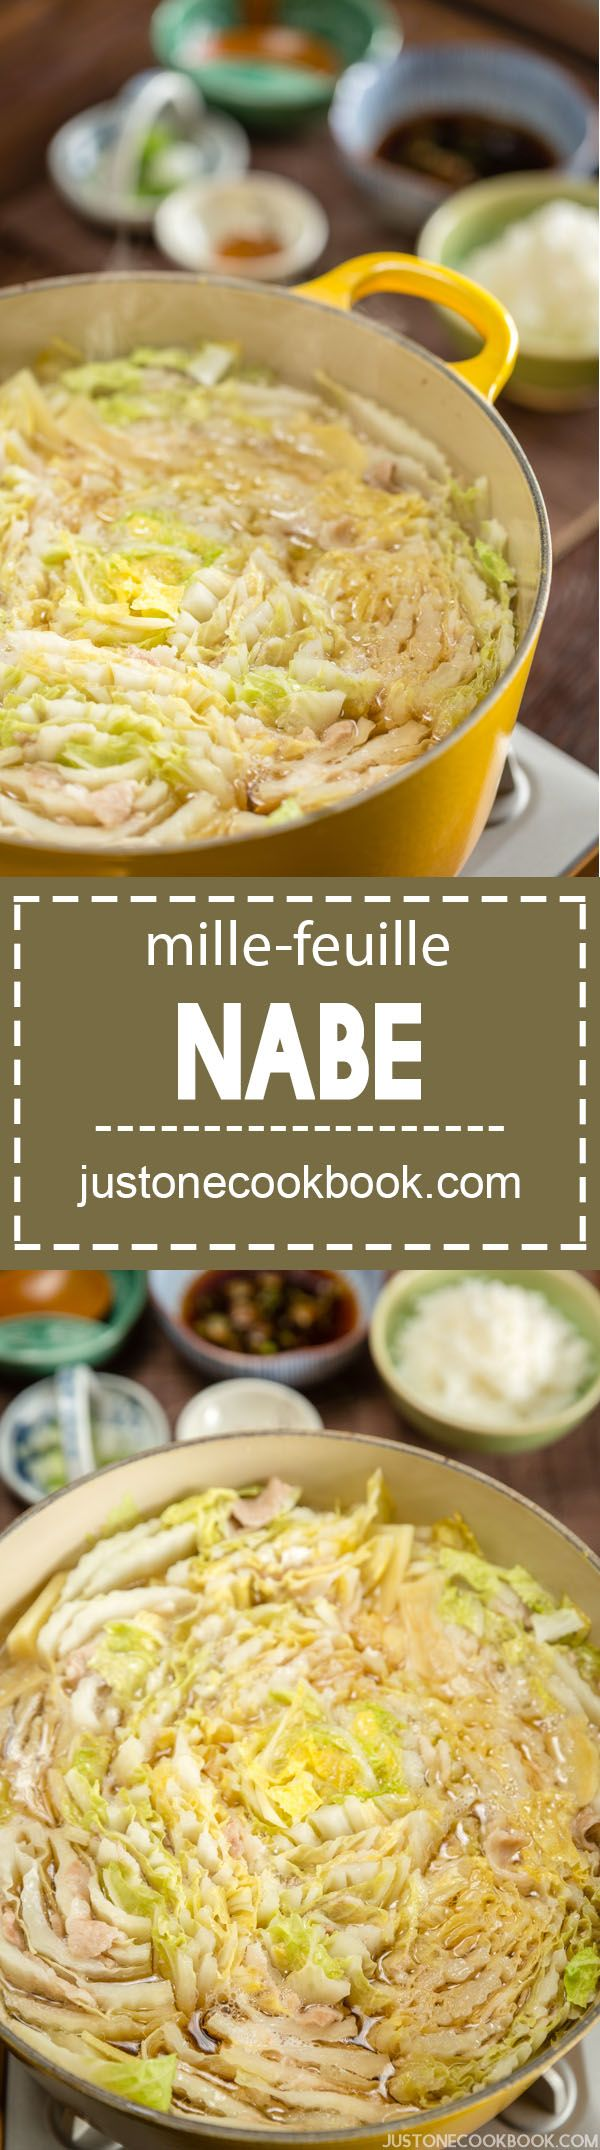 how to make mille feuille nabe